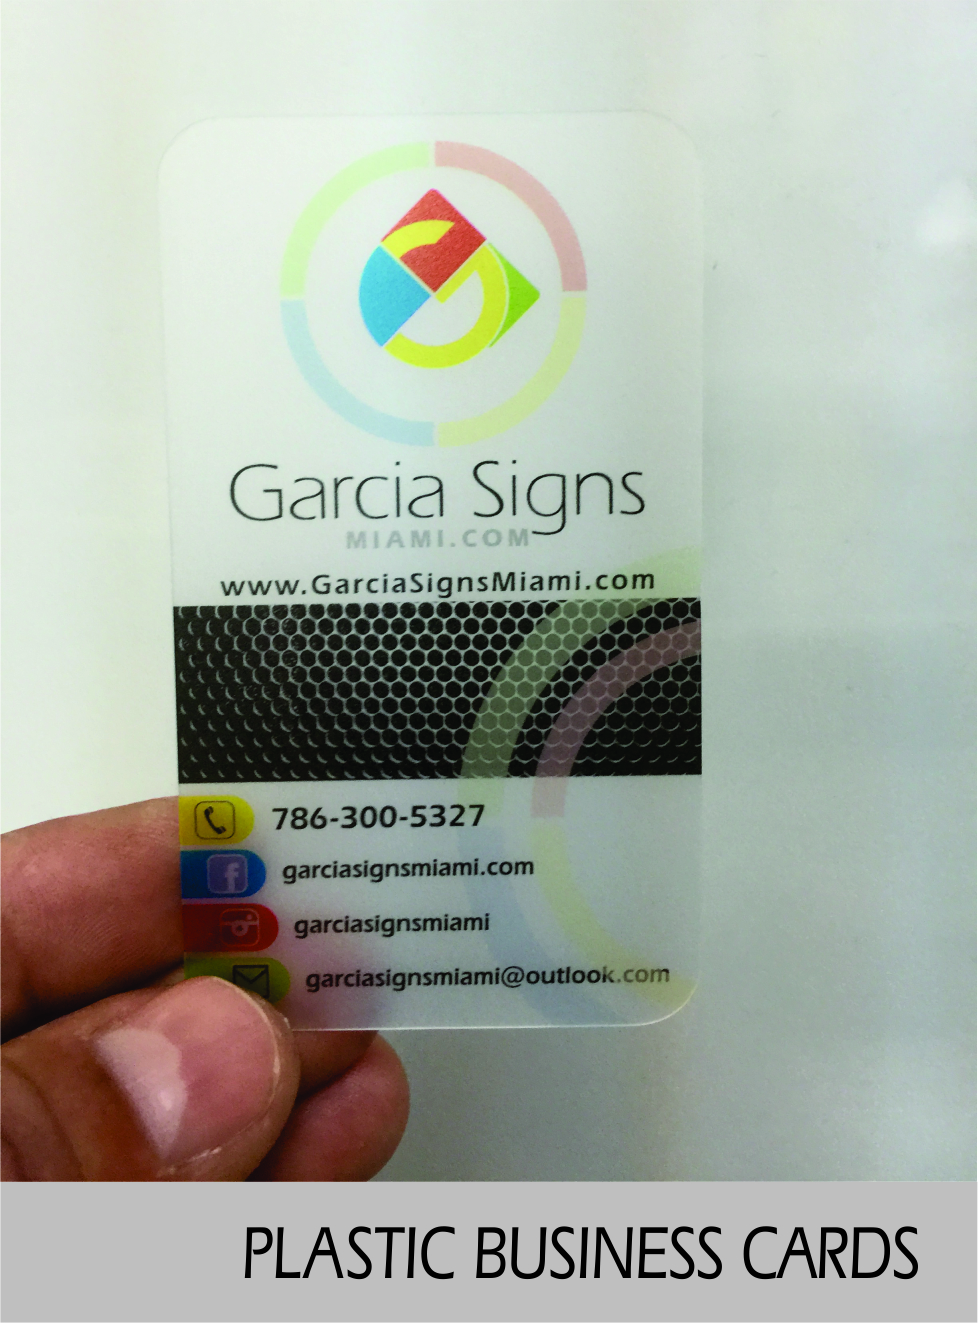 Business Cards 3.5×2″ – Garcia Signs Miami